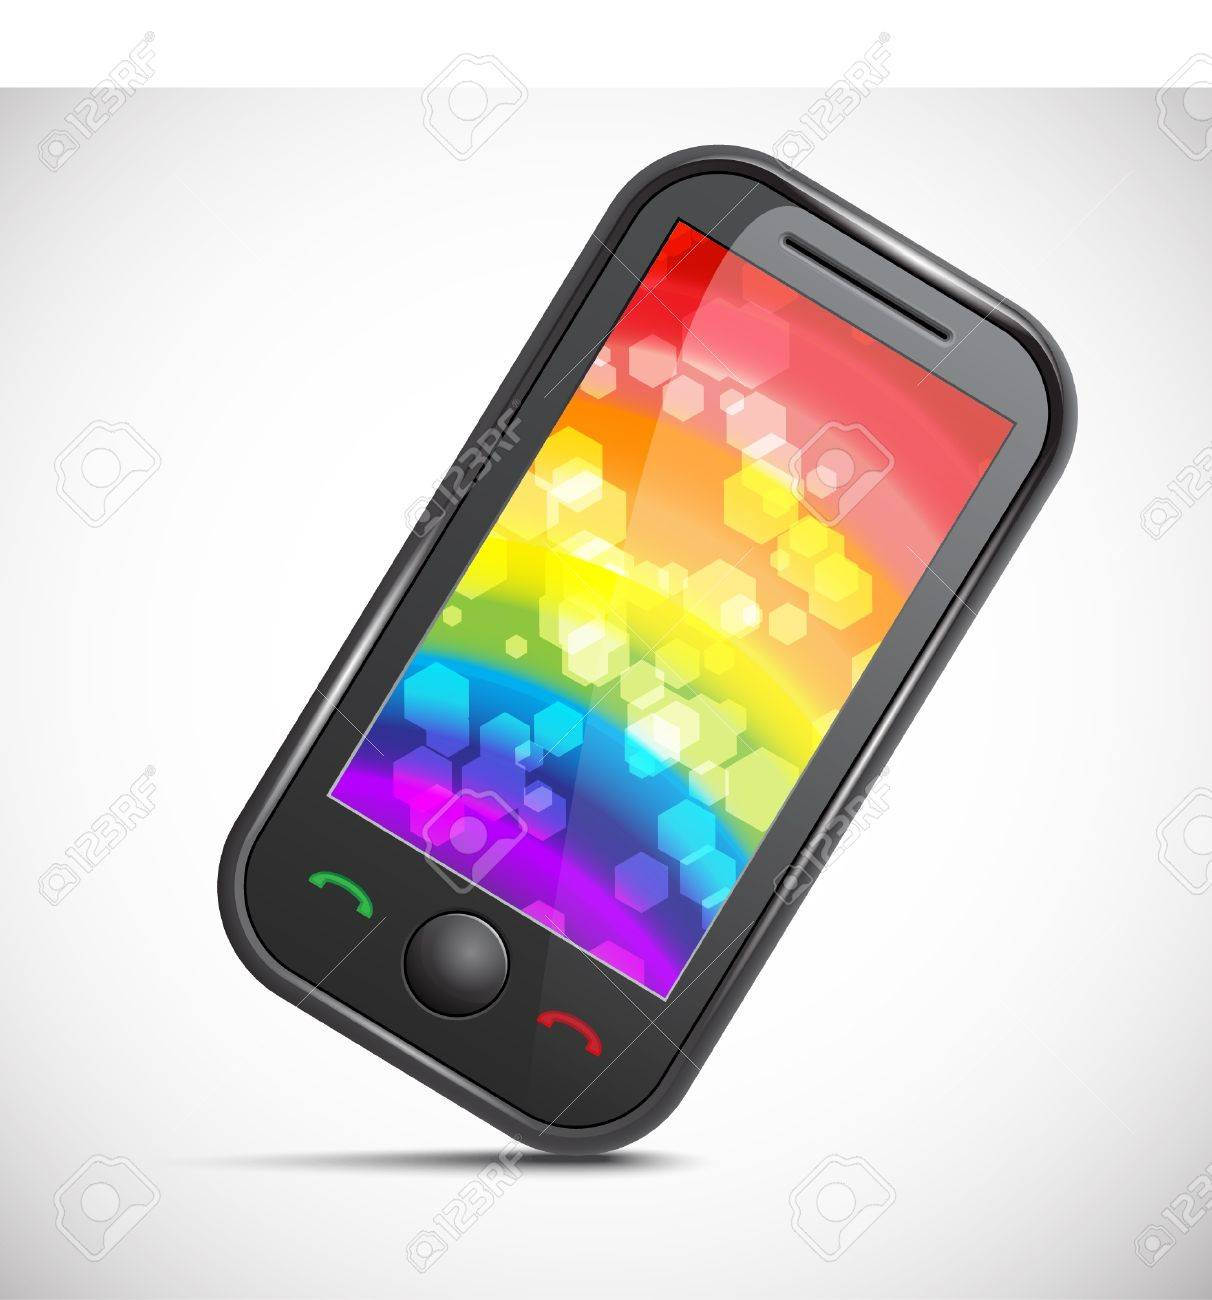 Icon Of A Modern Mobile Phone With An Abstract Colourful Background